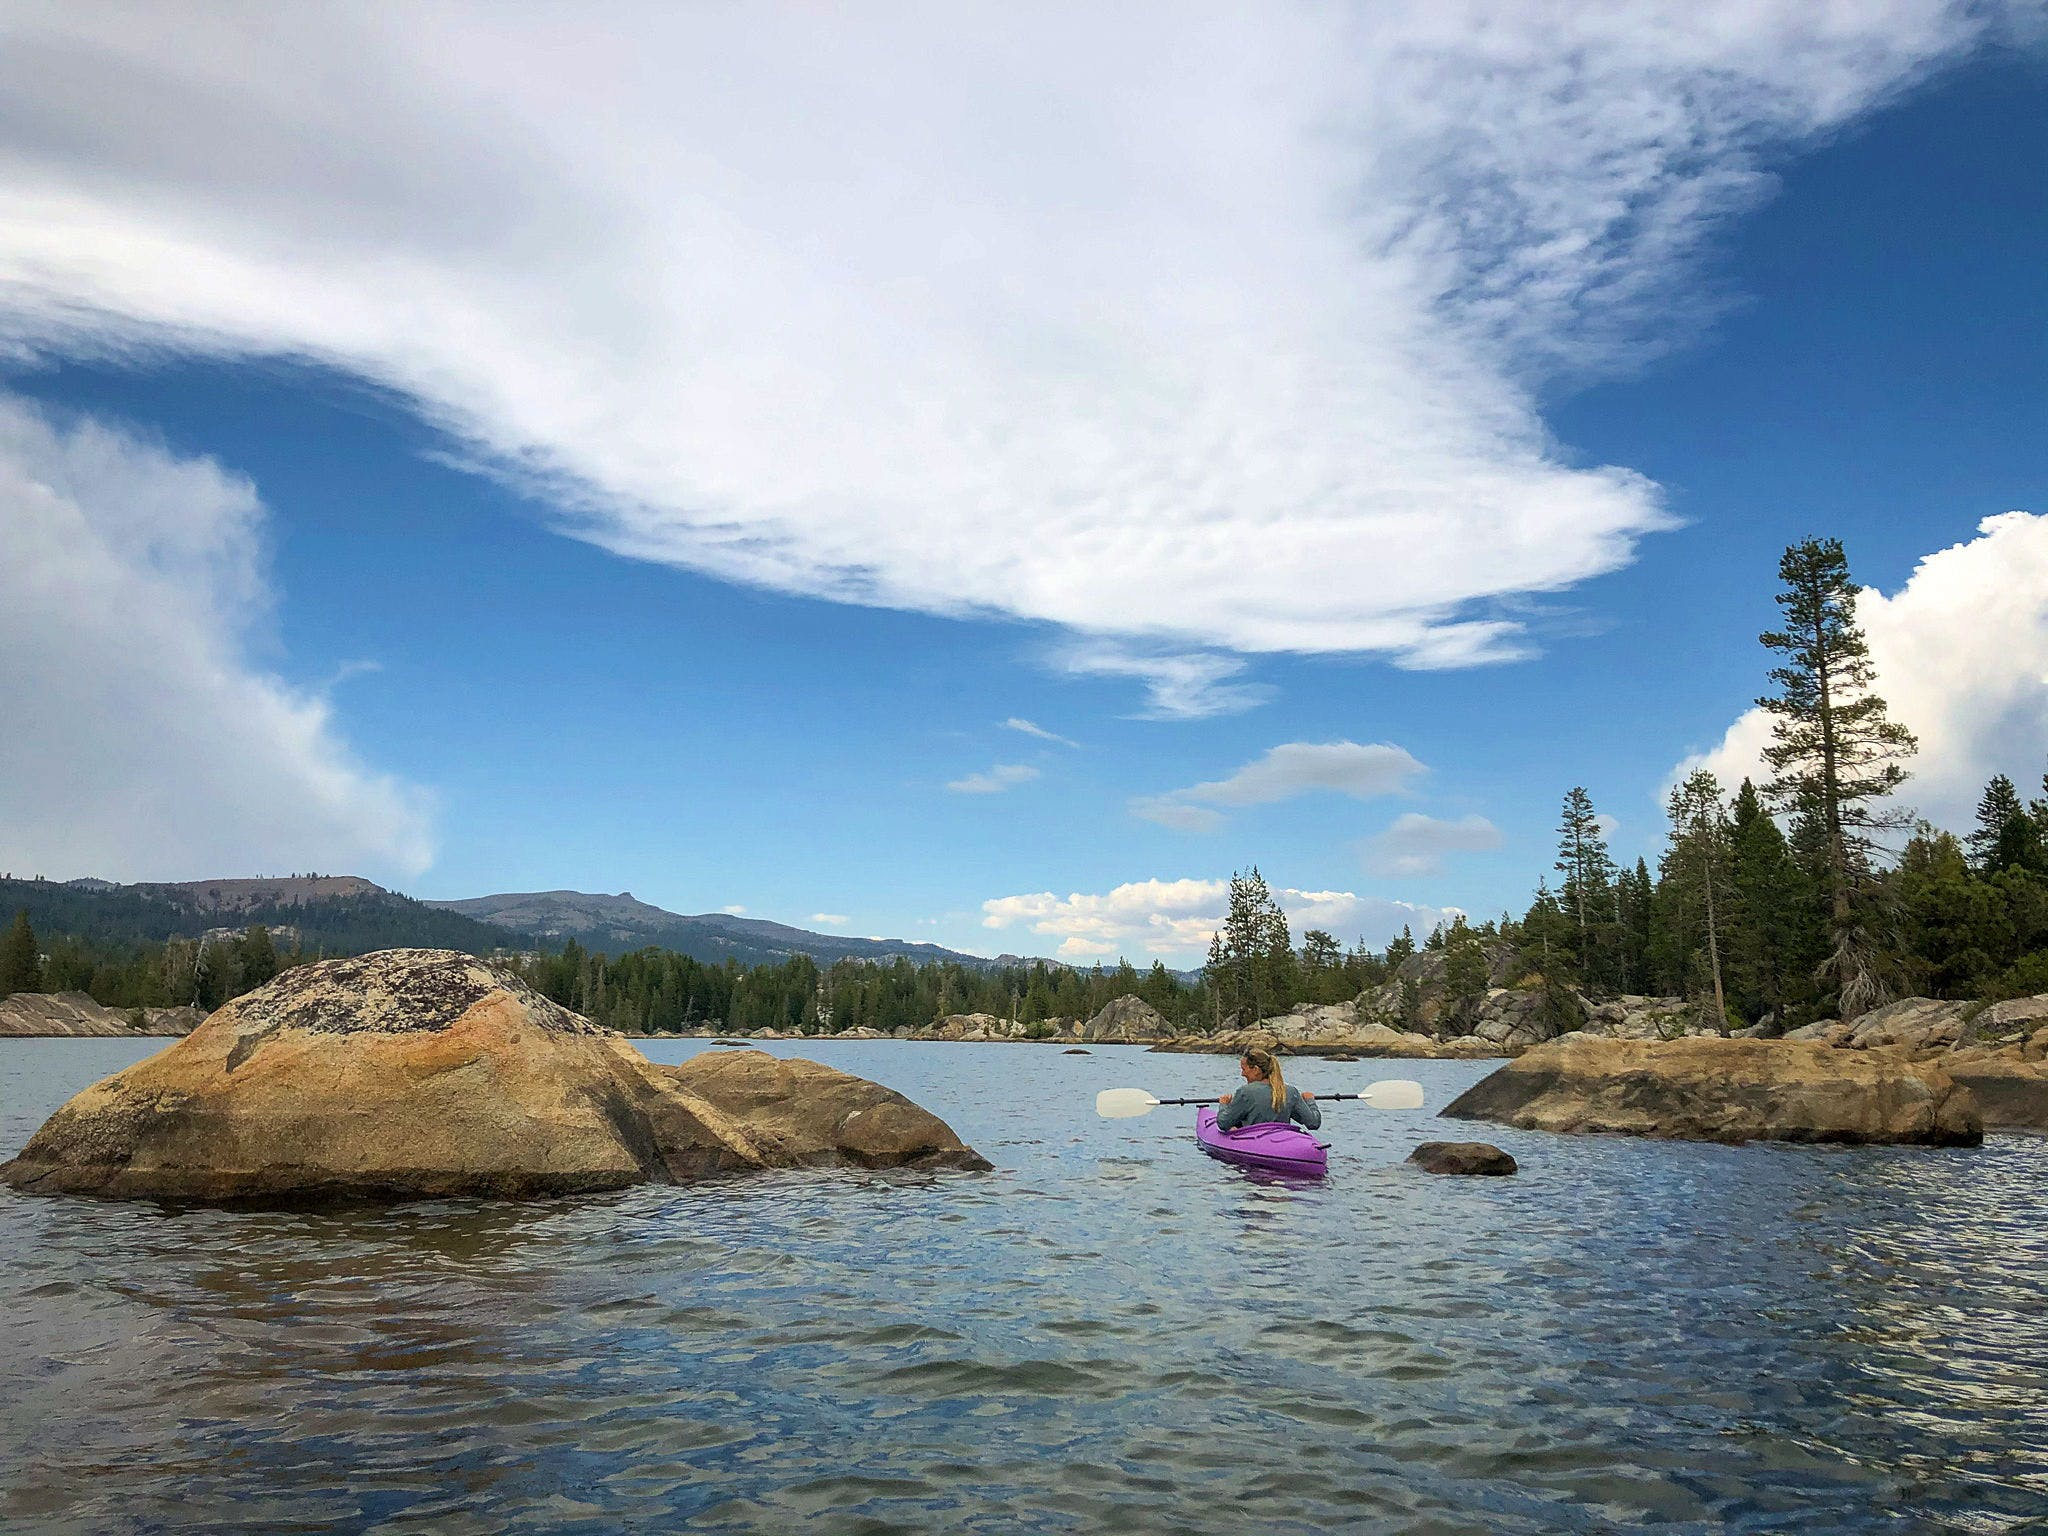 Woman kayaking at Utica Reservoir in Stanislaus National Forest